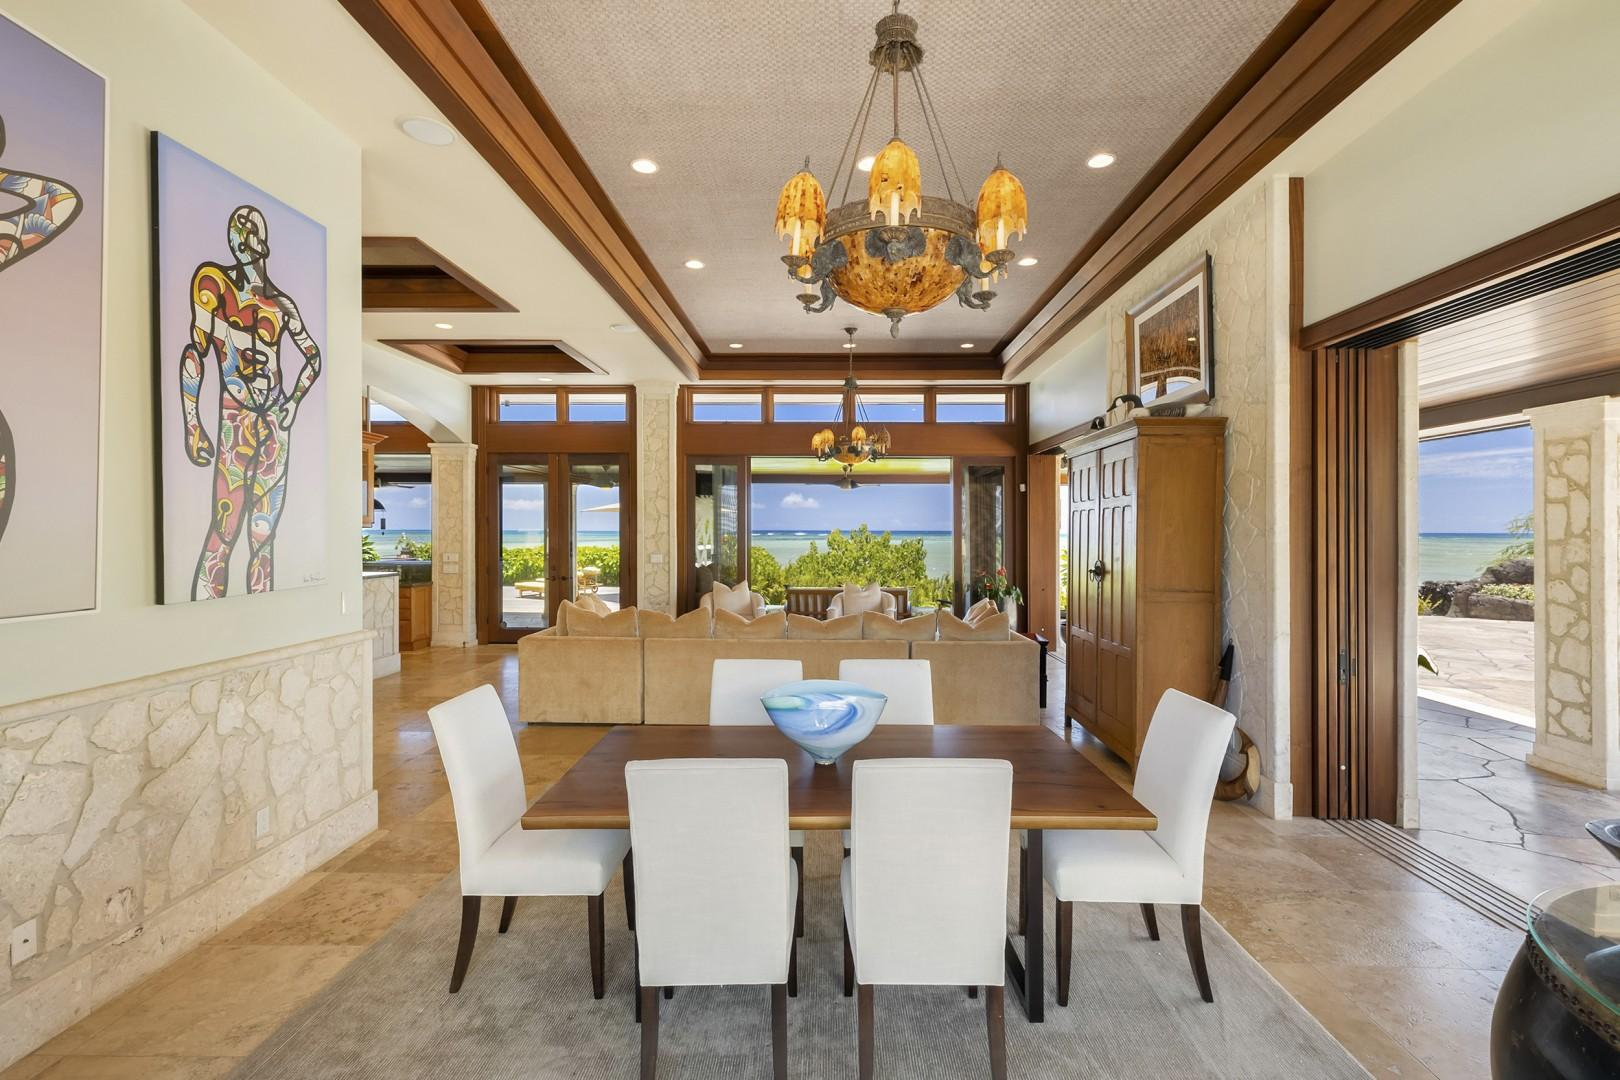 Formal Dining Room with seating for 6